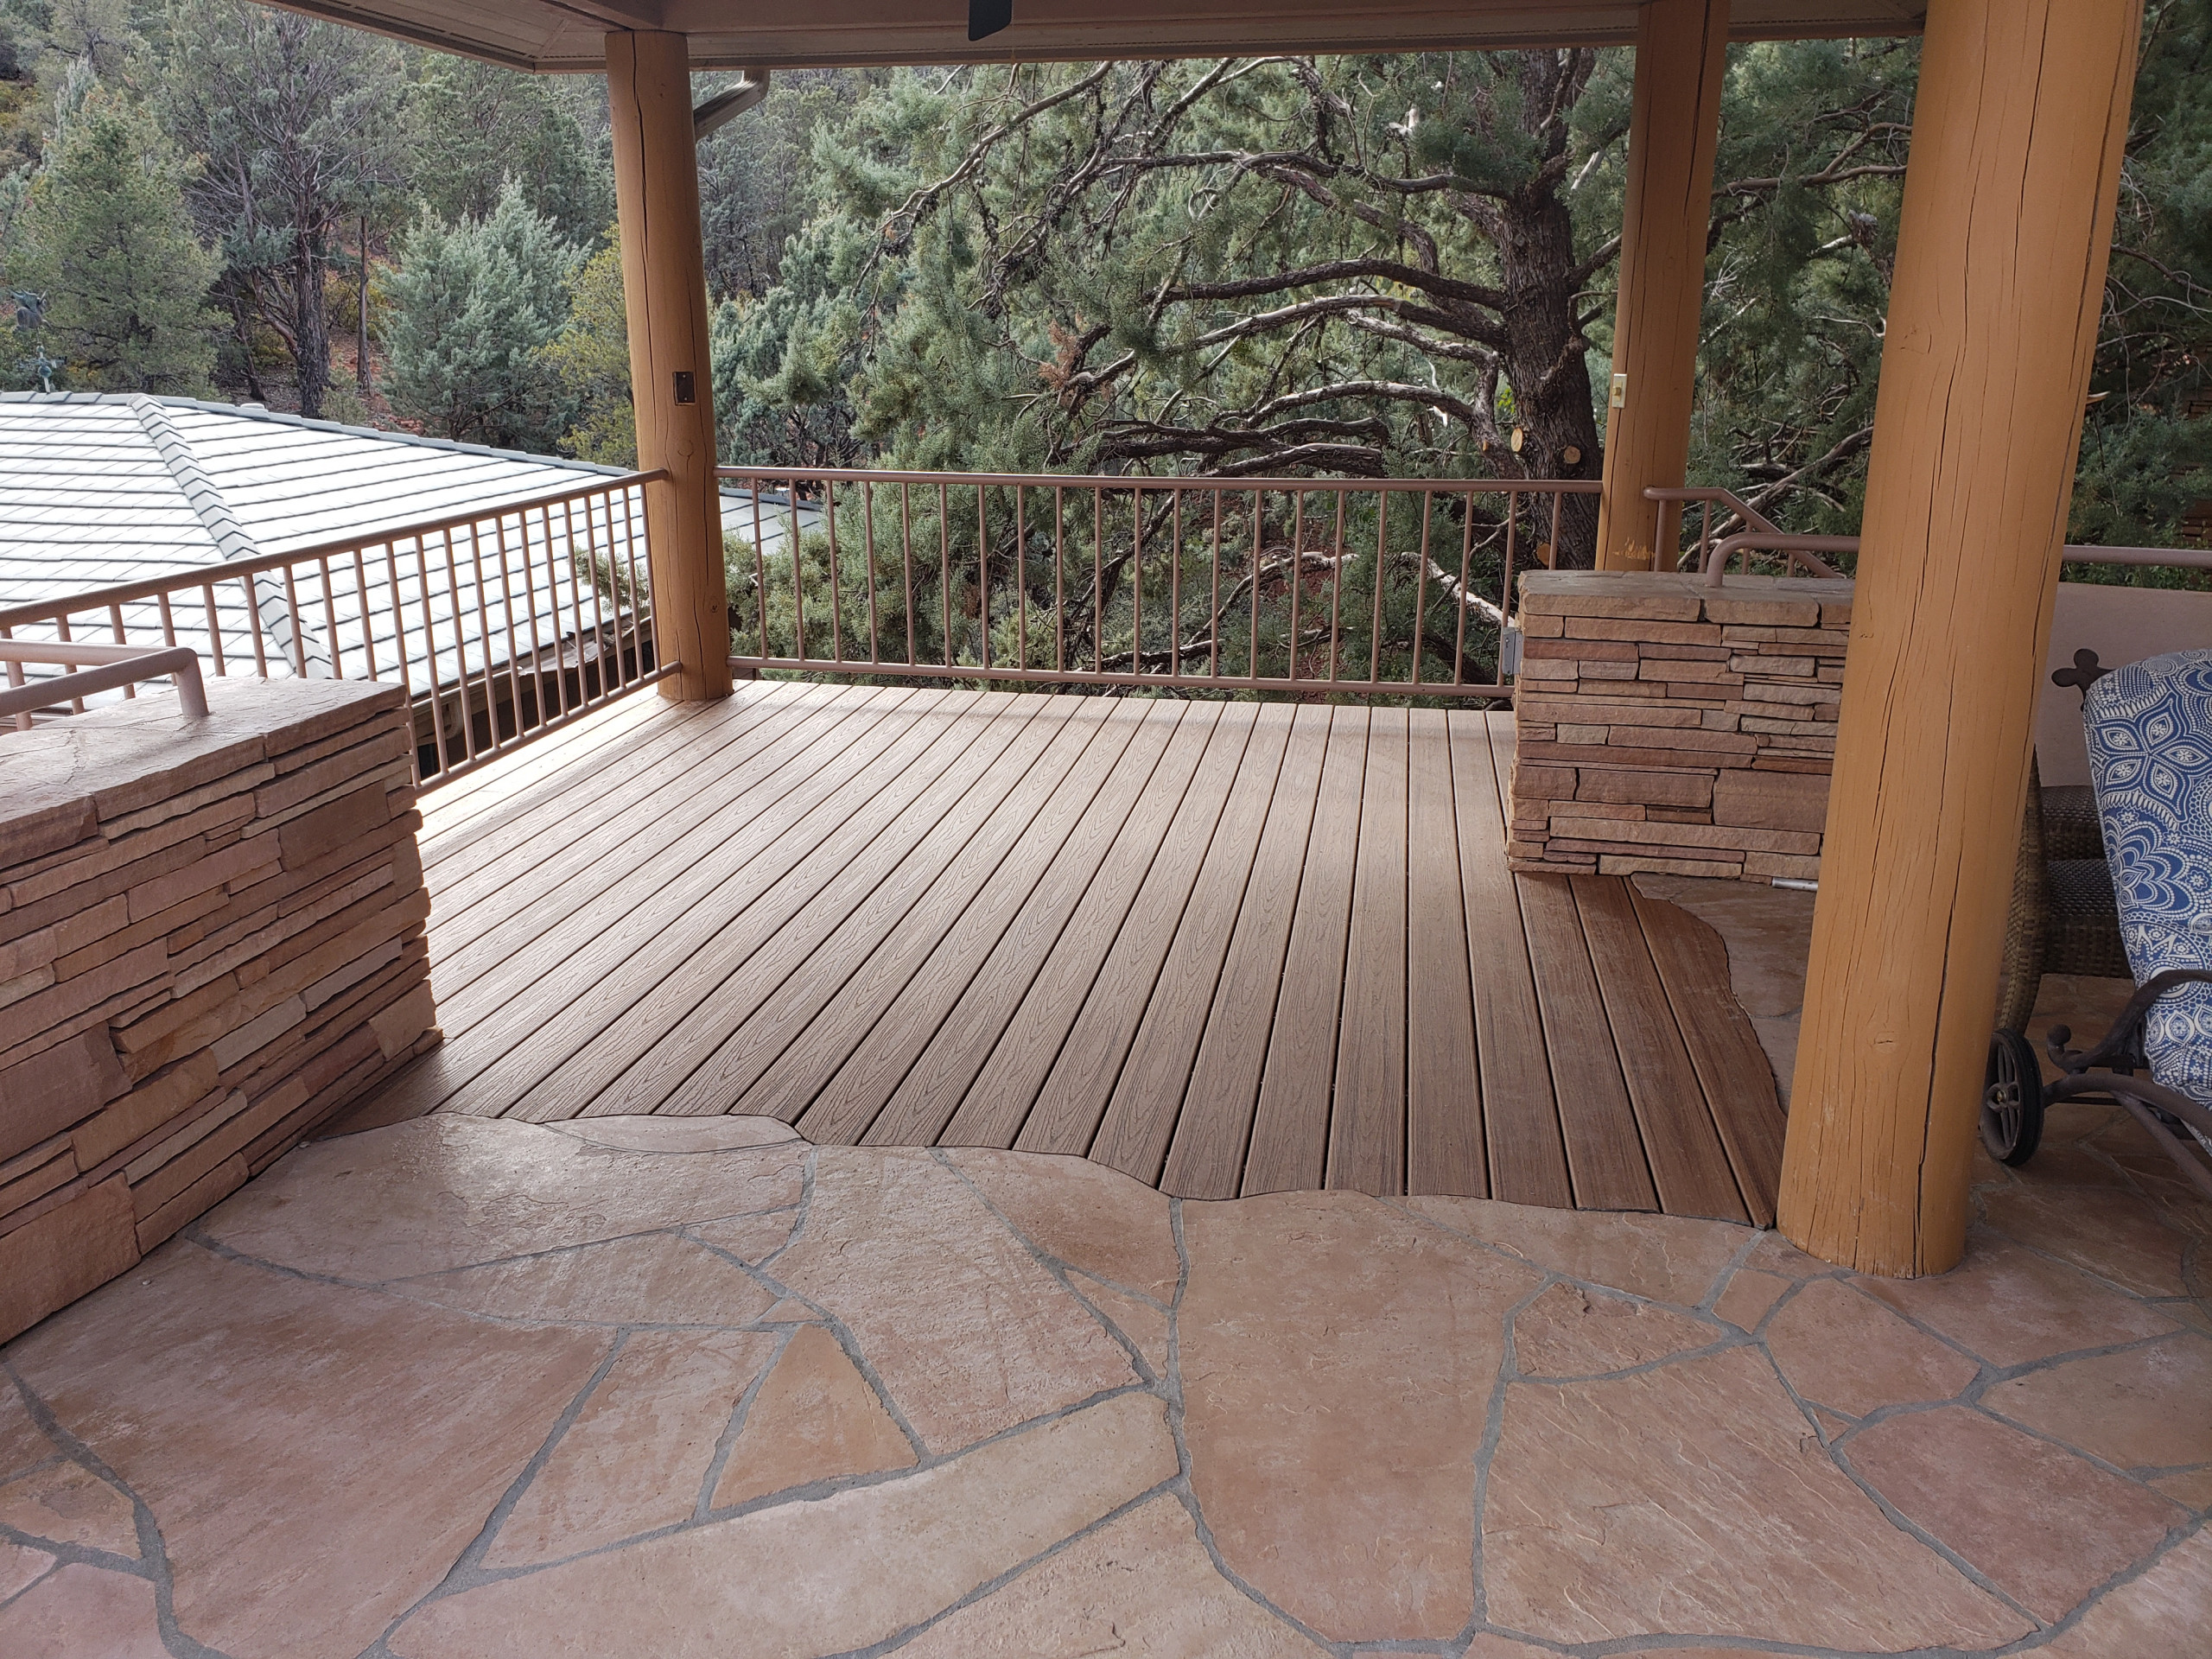 Technology decks - for the new At Home lifestyle